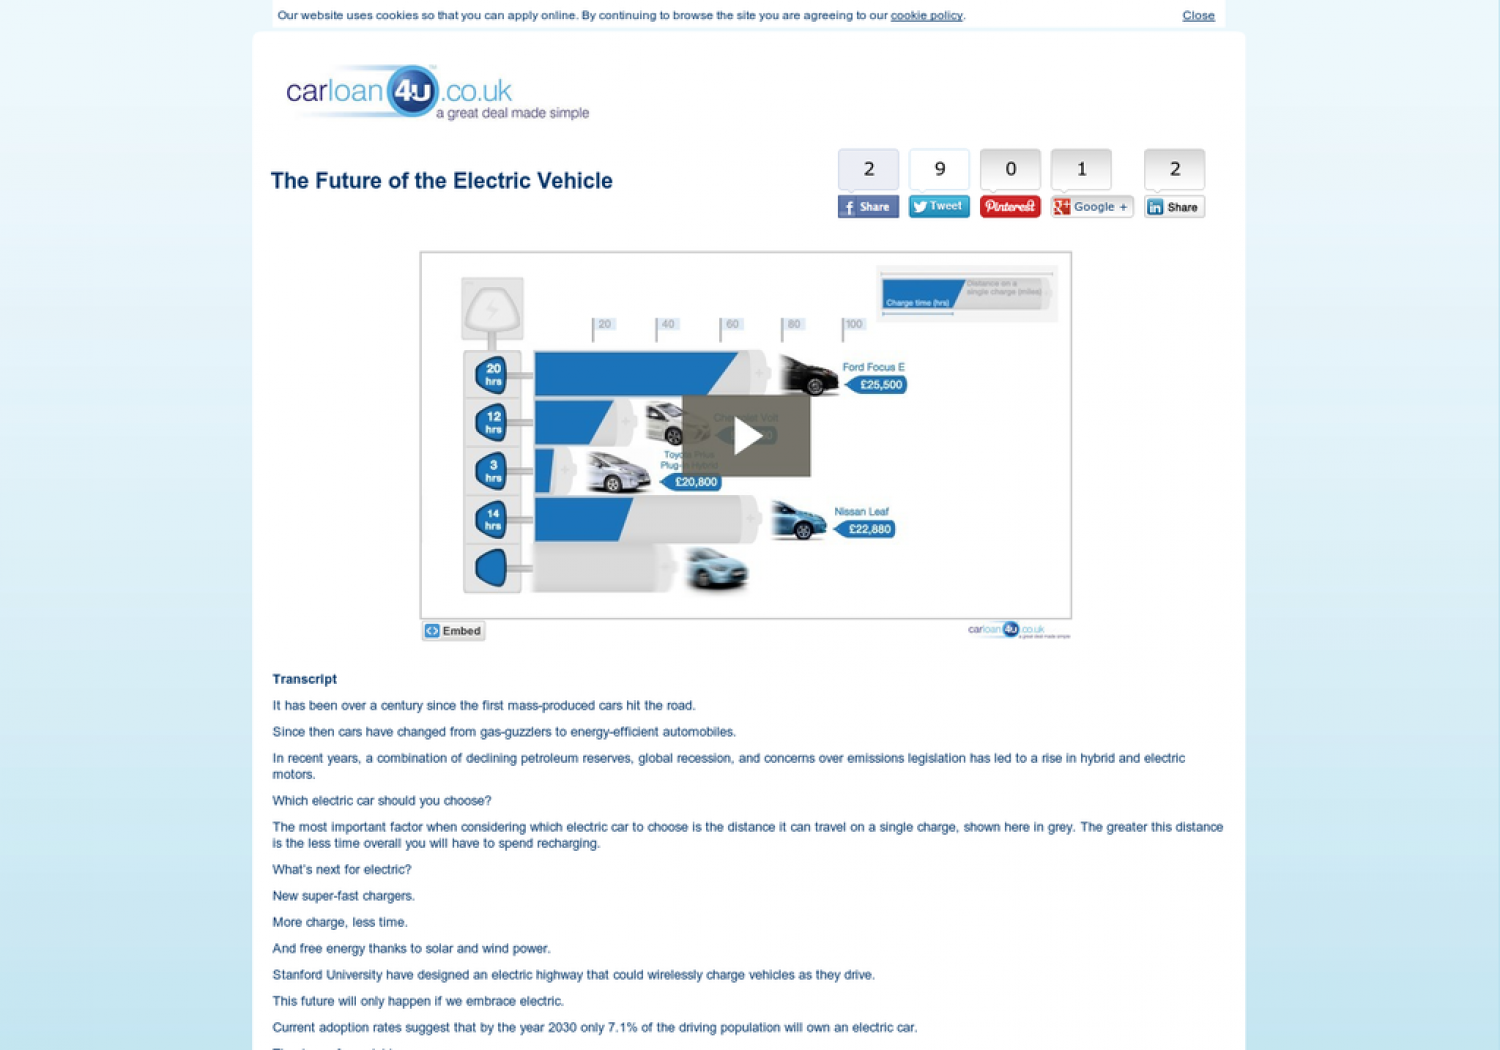 The Future of the Electric Vehicle Infographic